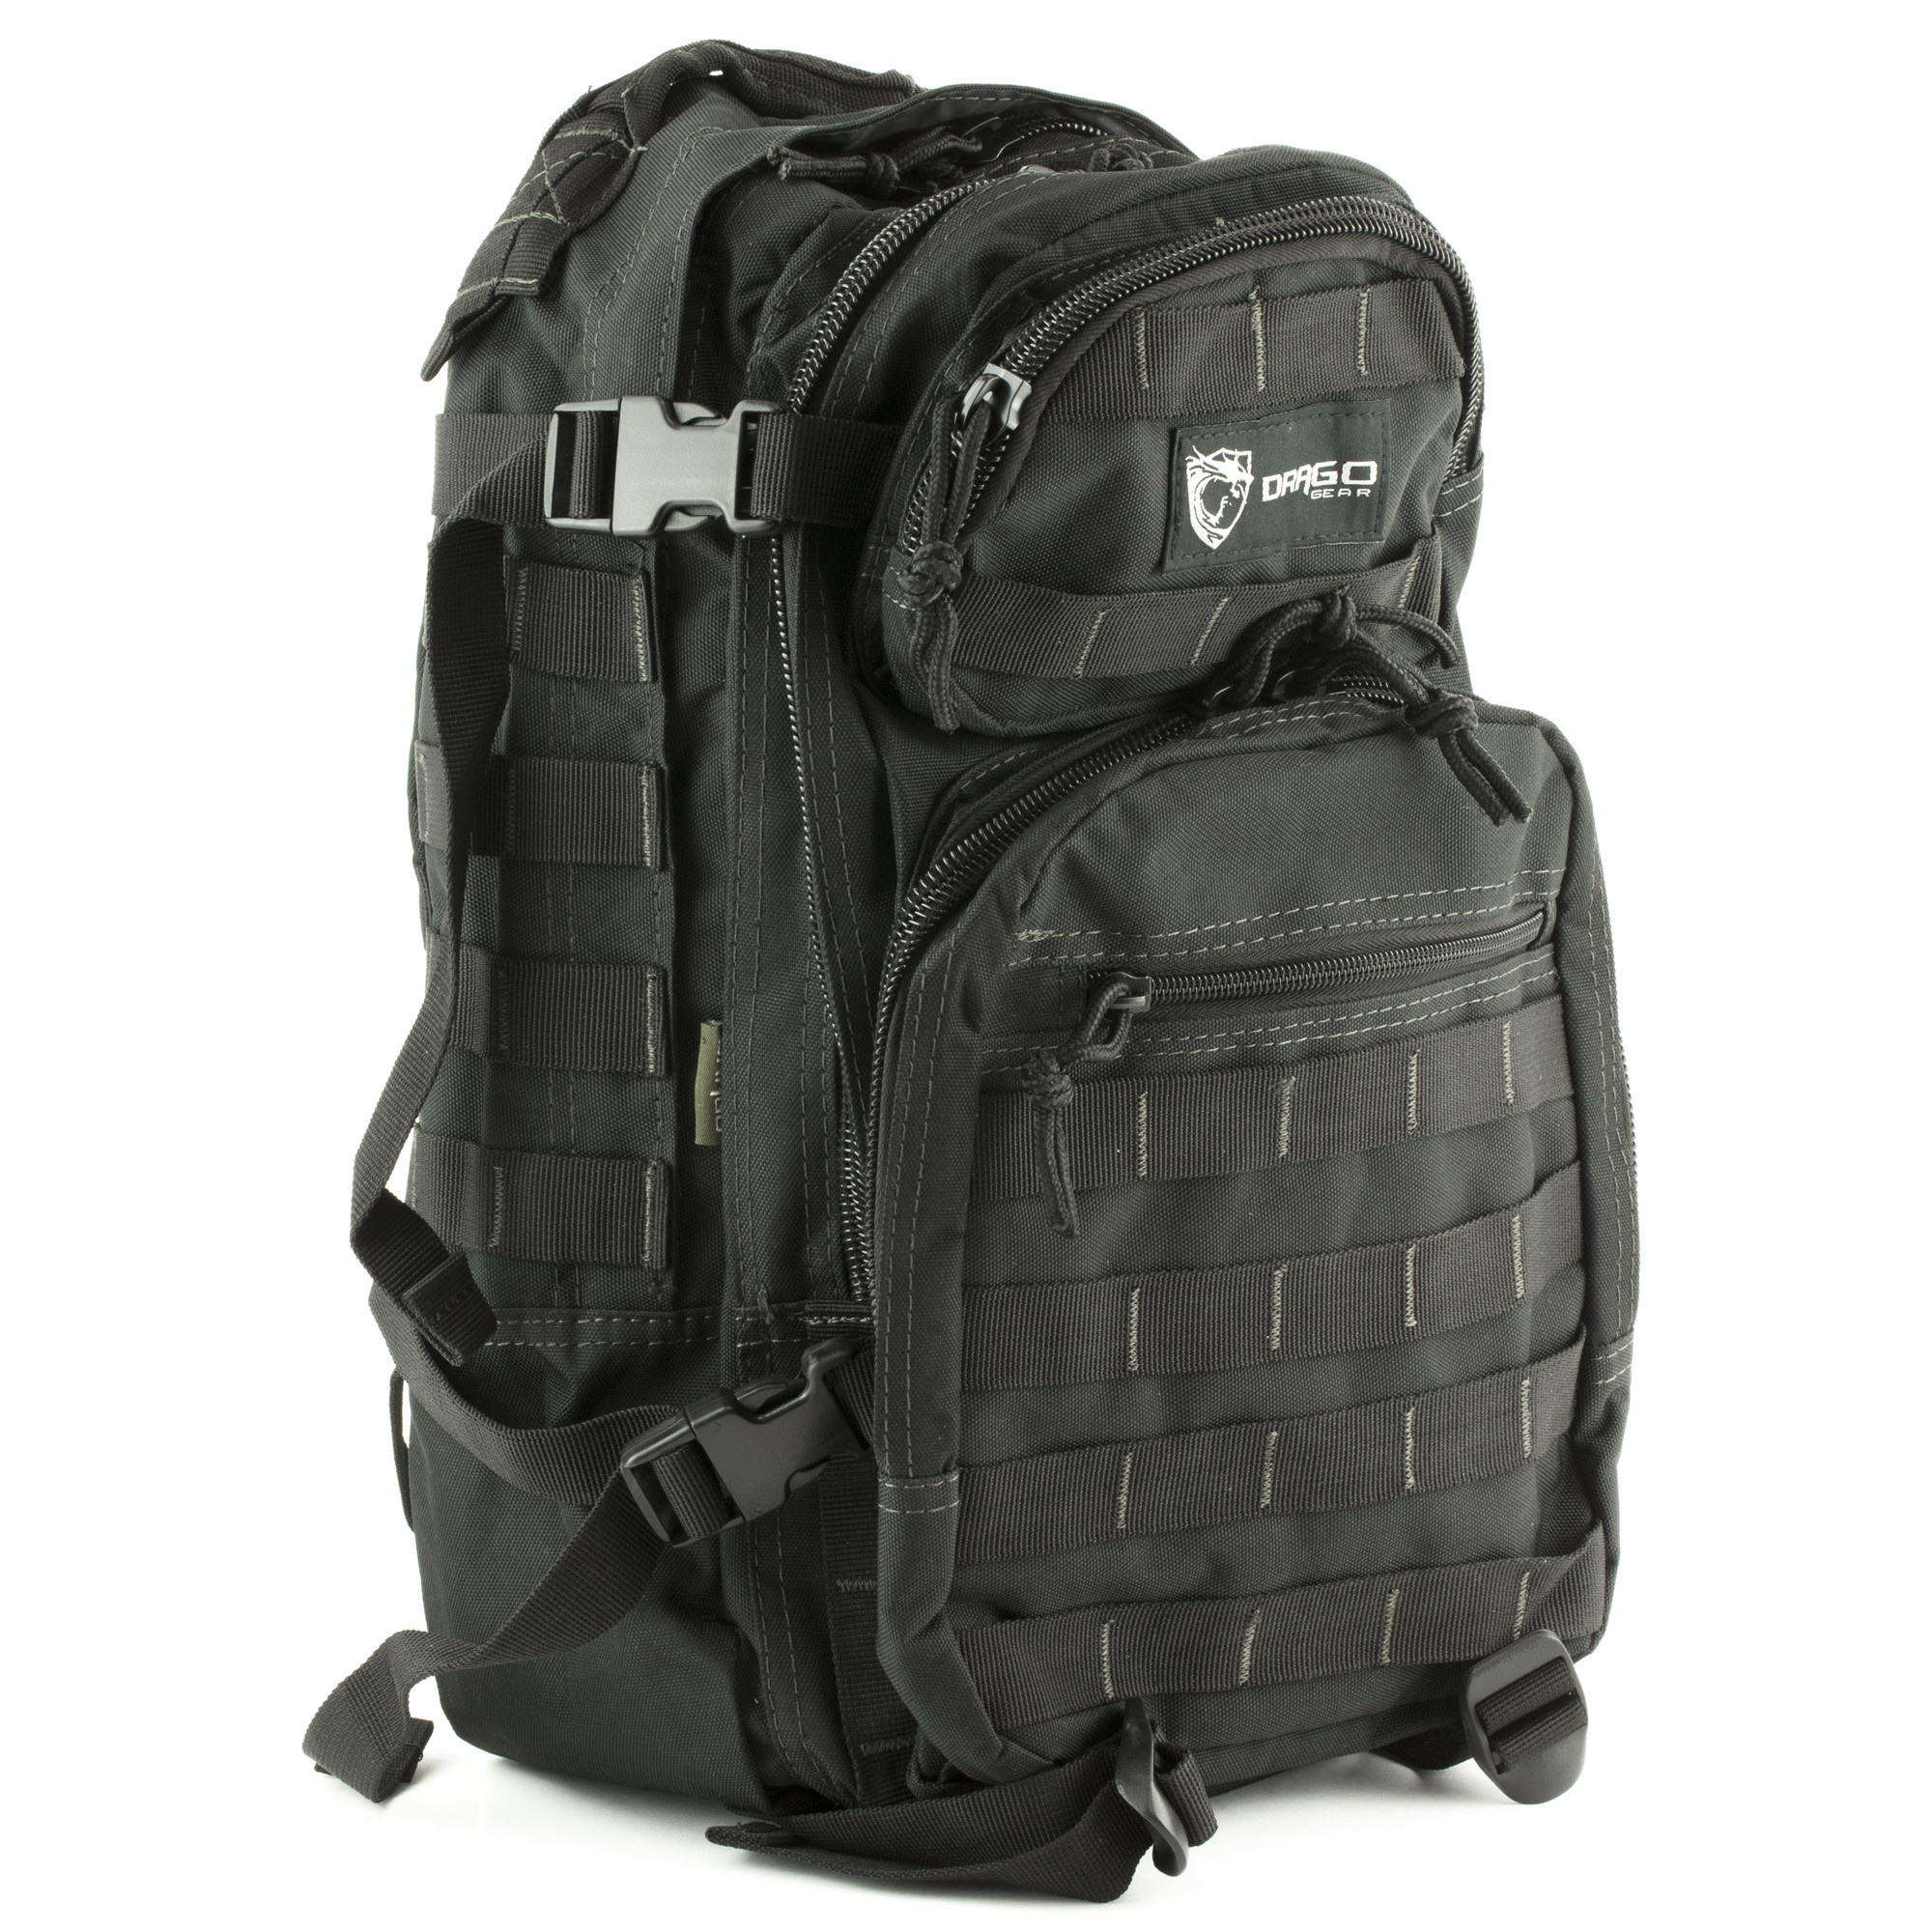 Drago Gear Drago Scout Backpack/Task Force Collection BLACK (#14-305BL)